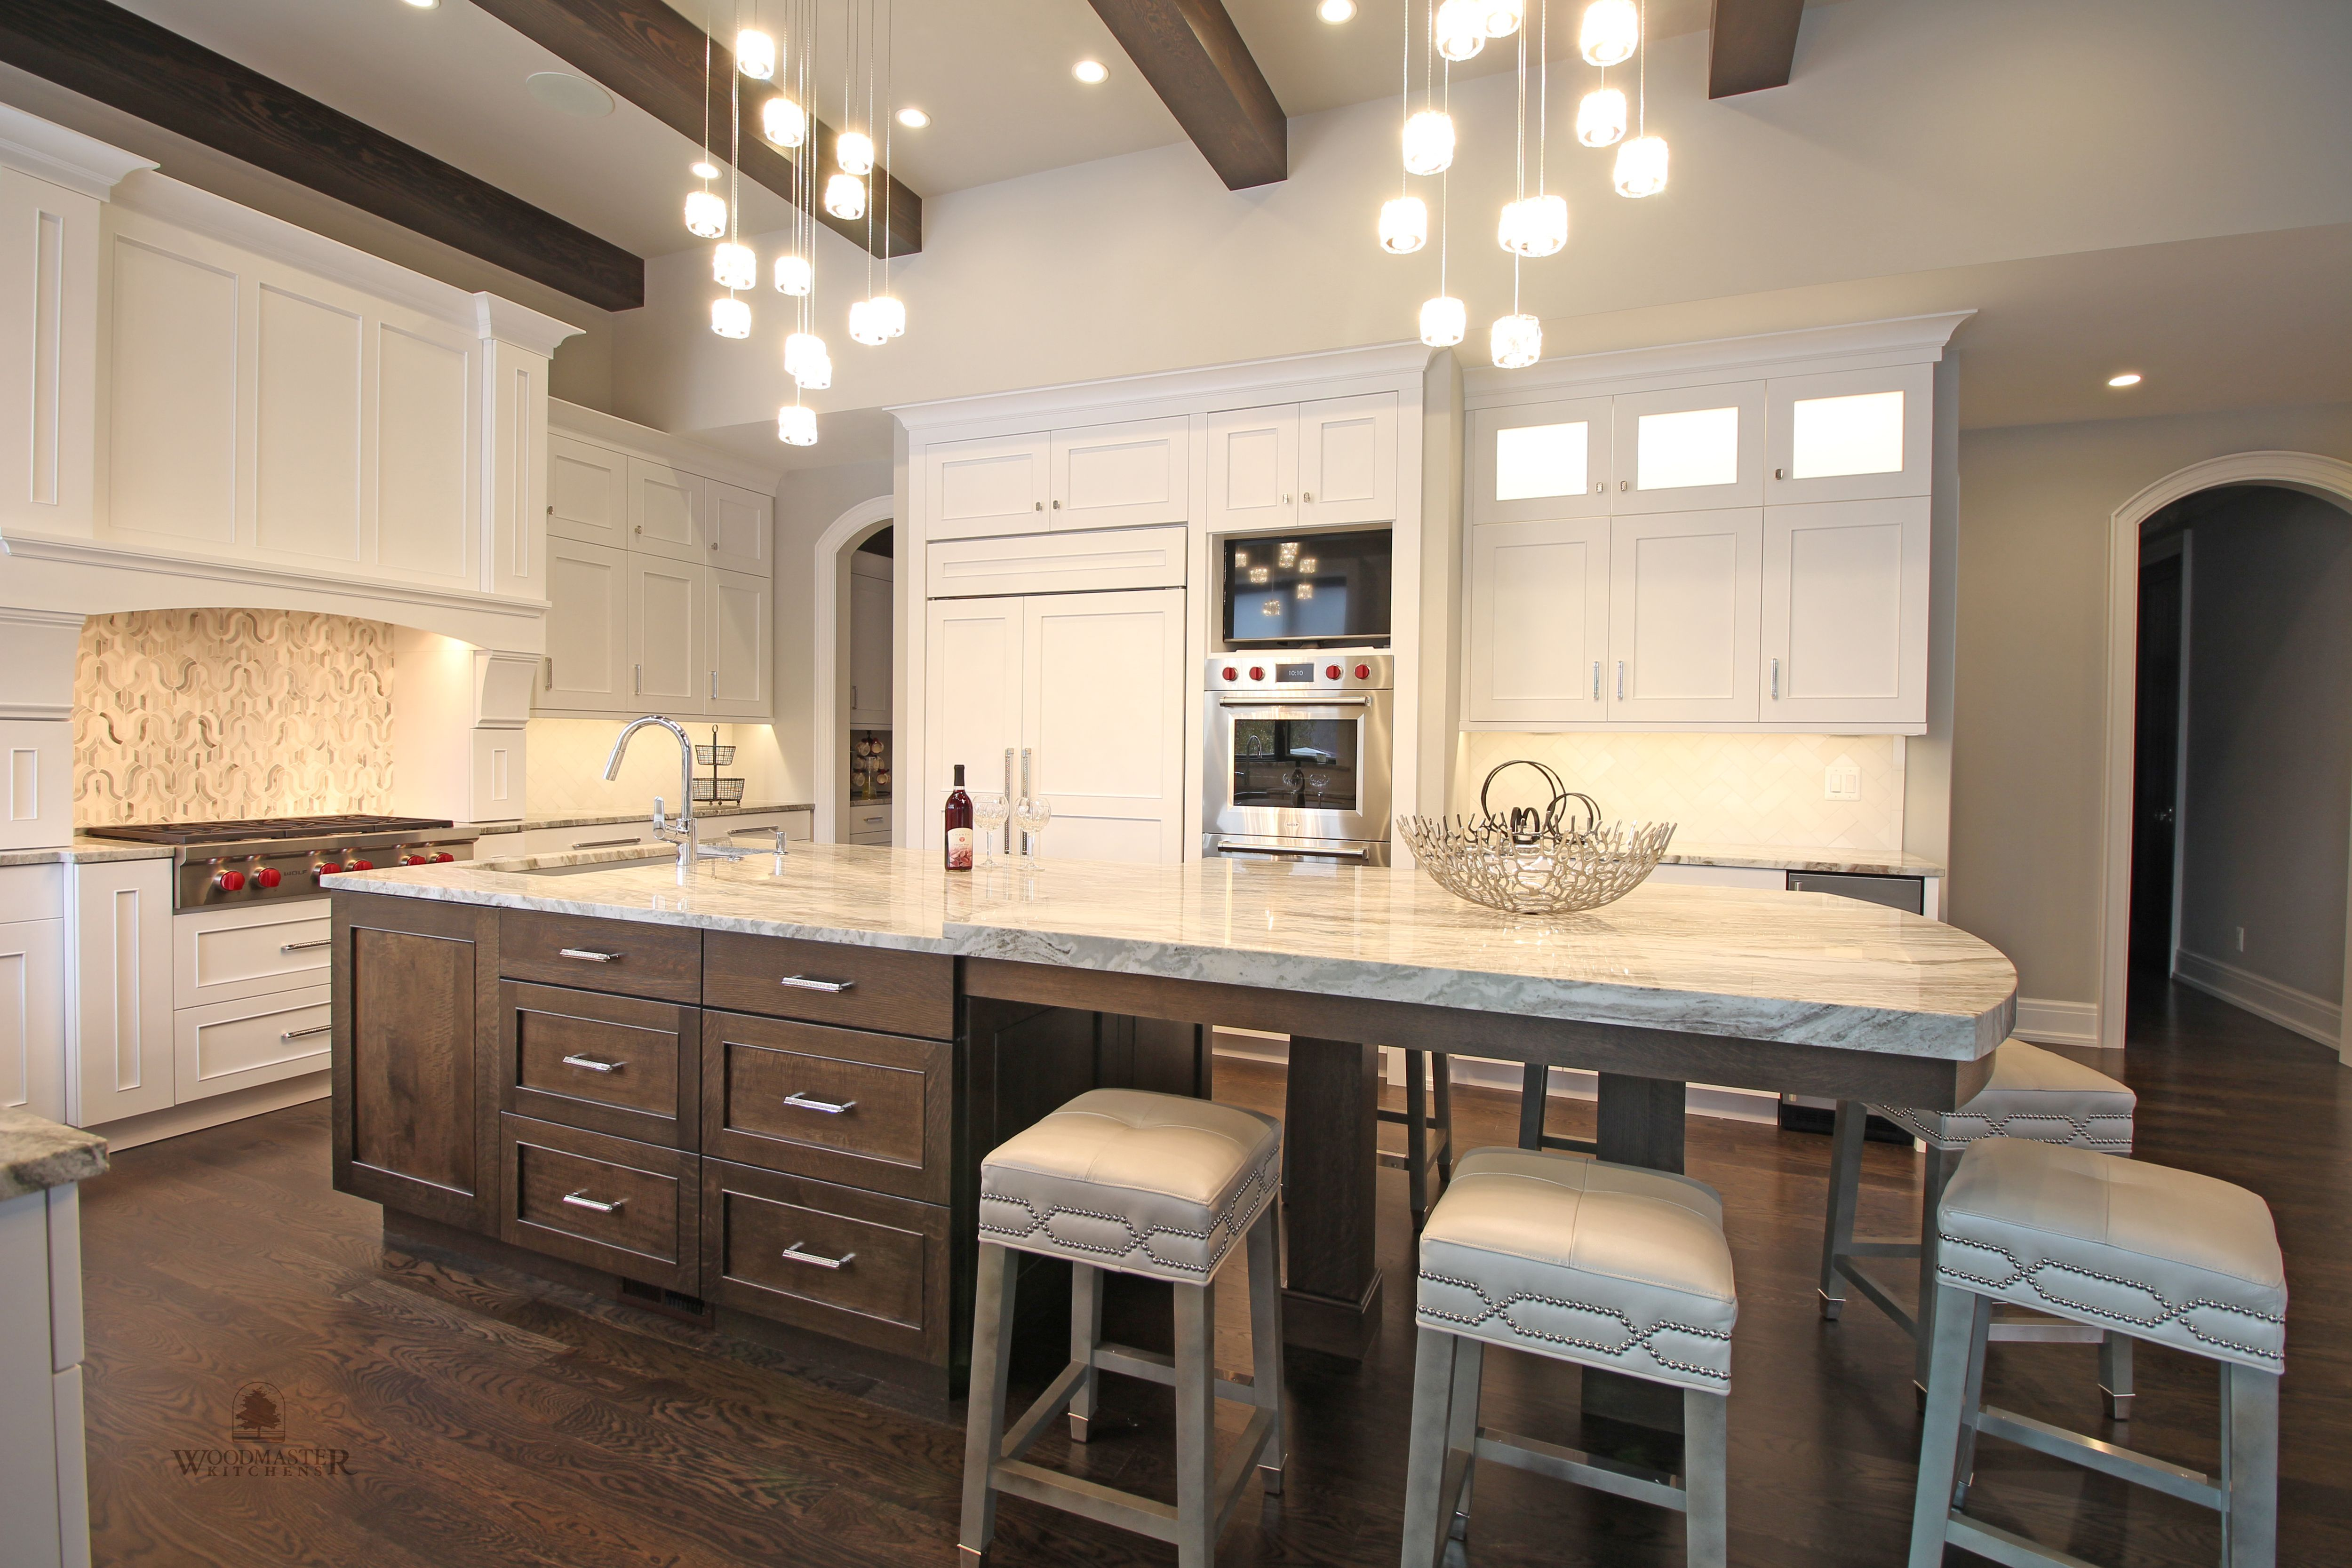 This Transitional Kitchen Design Combines Amazing Stylish And Practical Features In One Space Transitional Kitchen Design Kitchen Design Transitional Kitchen